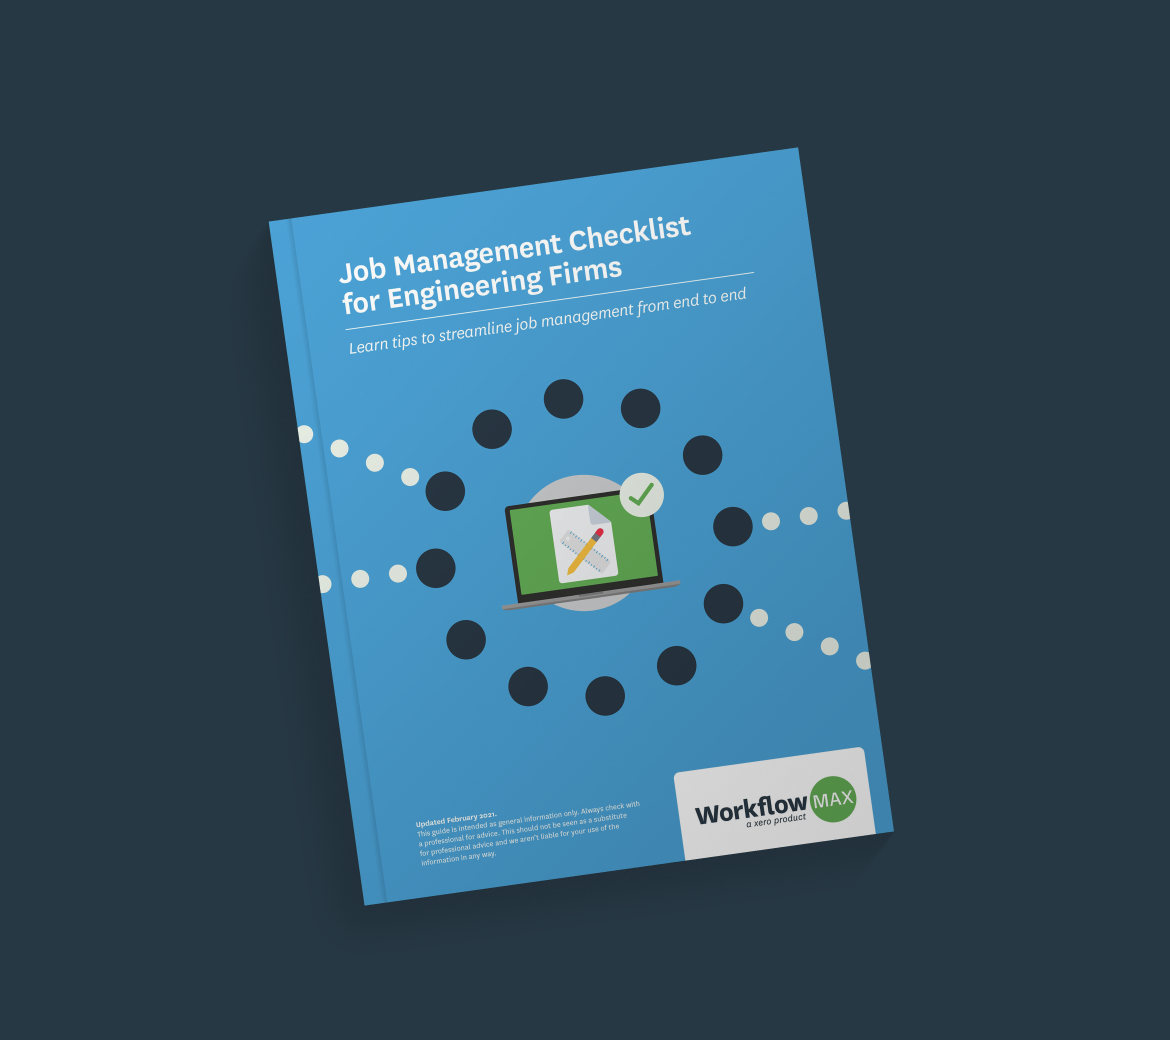 Free download: Job Management Checklist for Engineering Firms